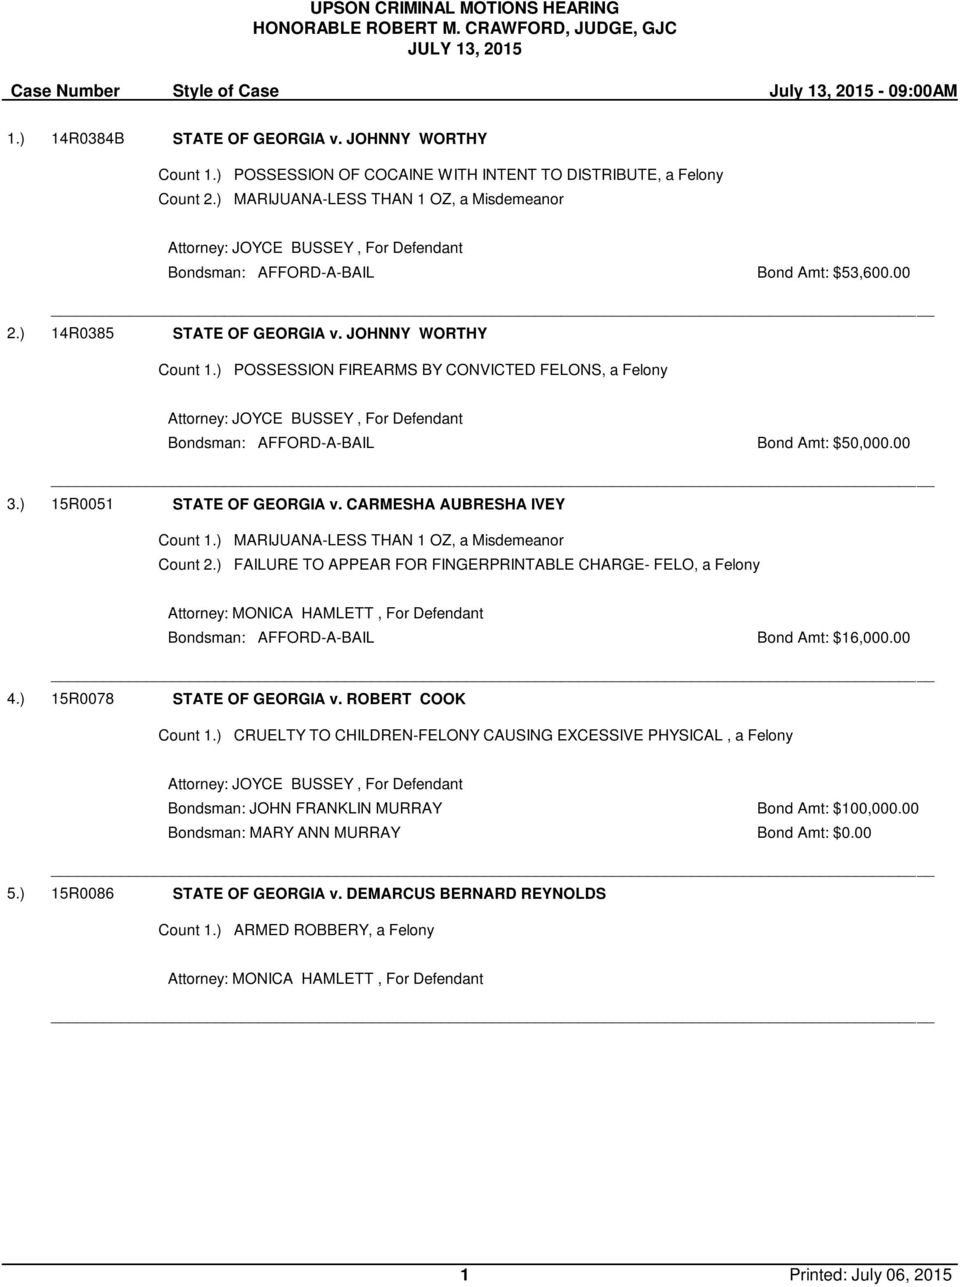 ) 14R0385 STATE OF GEORGIA v. JOHNNY WORTHY POSSESSION FIREARMS BY CONVICTED FELONS, a Felony Attorney: JOYCE BUSSEY, For Defendant Bondsman: AFFORD-A-BAIL Bond Amt: $50,000.00 3.